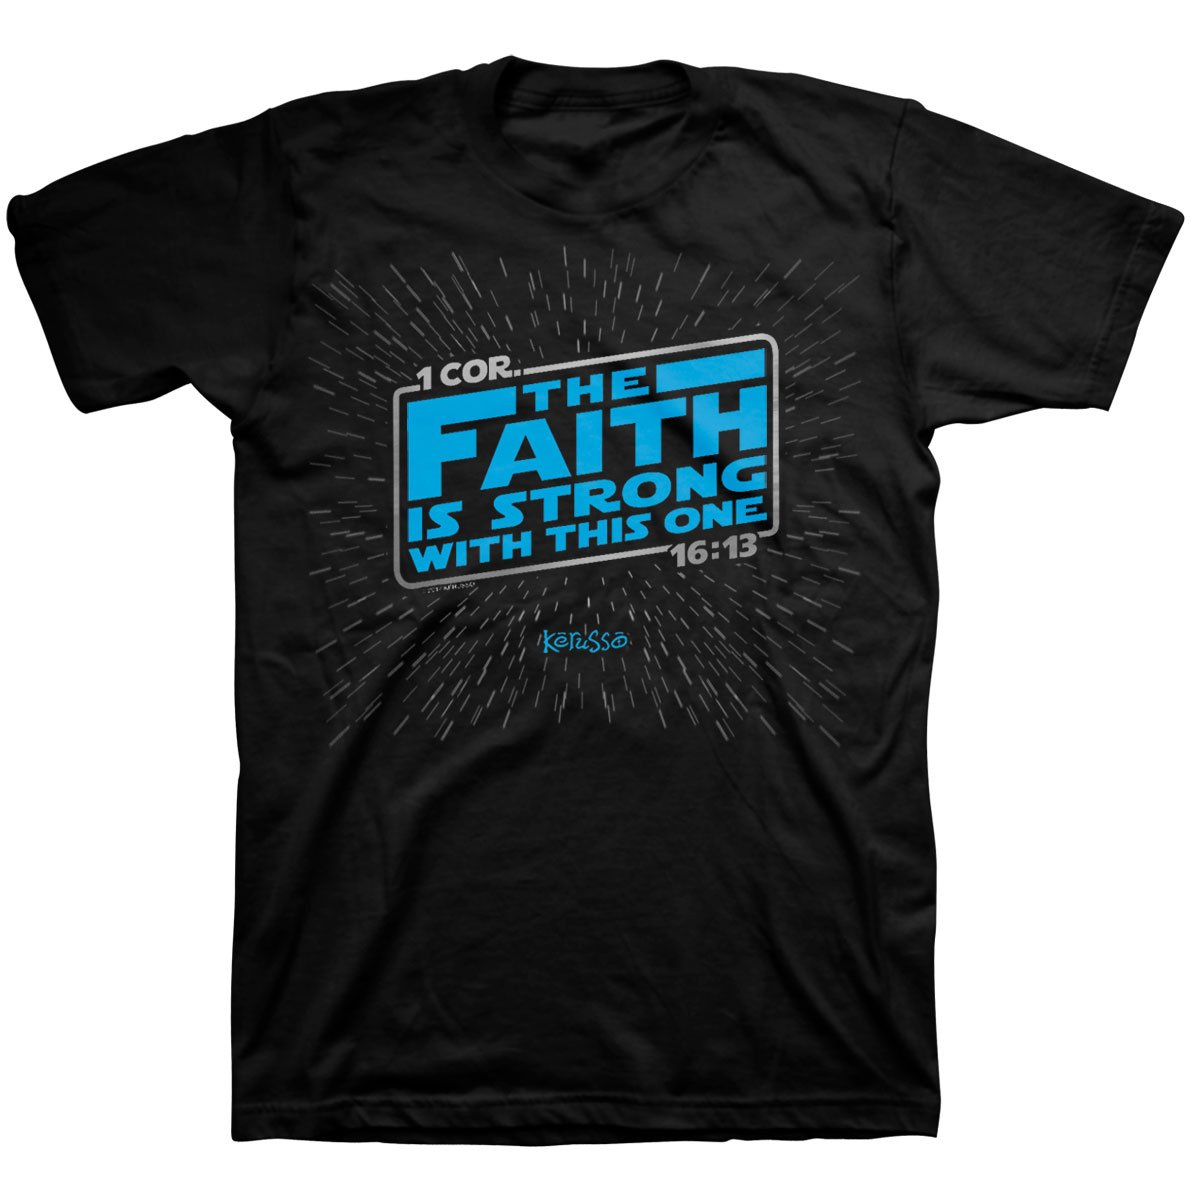 The Faith is Strong, Tee, LG, Black - Christian Fashion Gifts